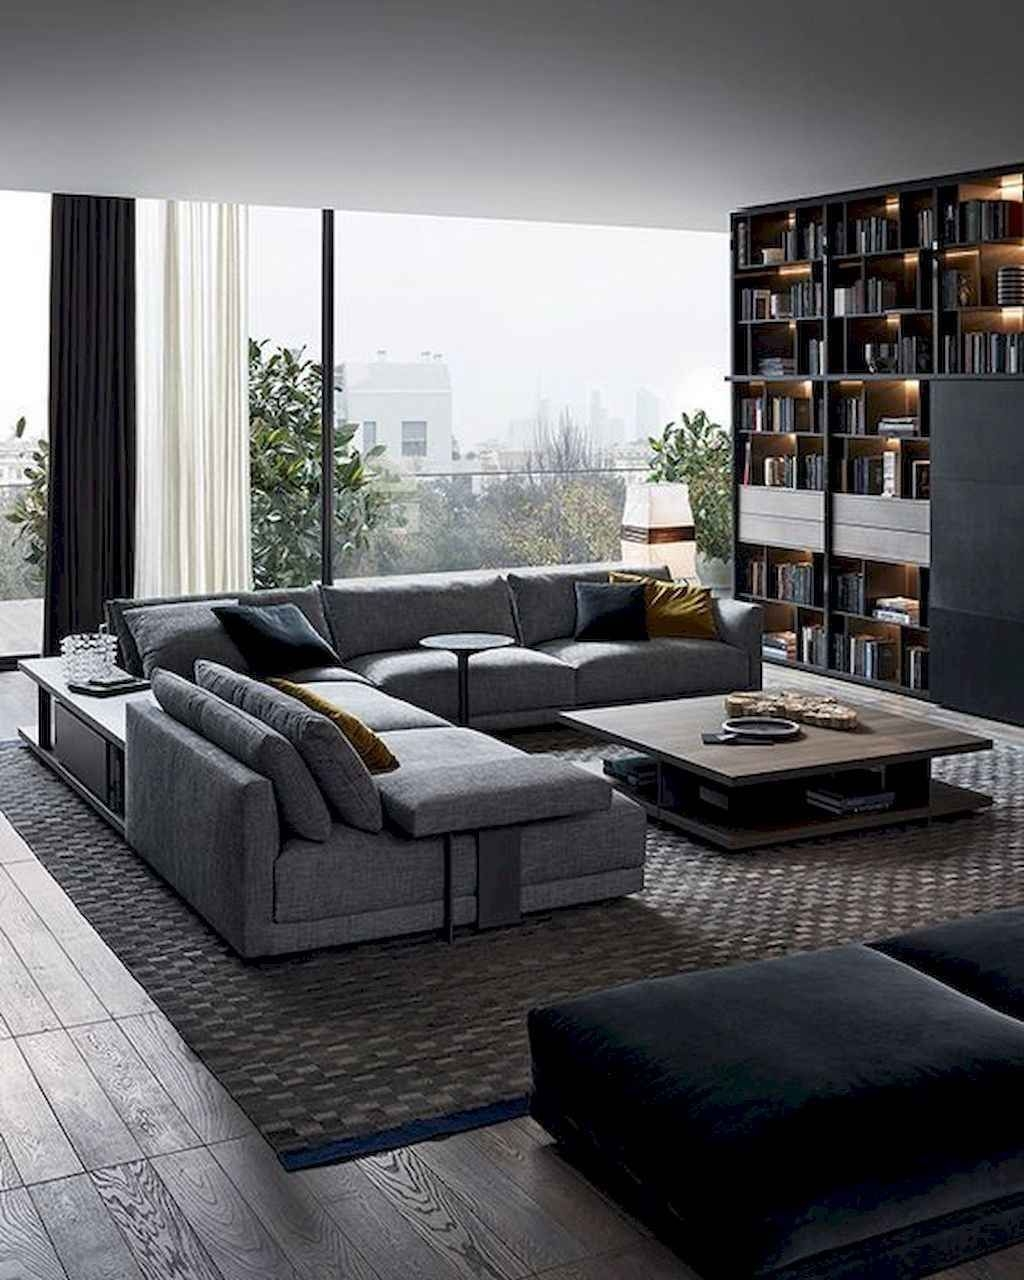 Elegant Luxury Living Room Ideas43